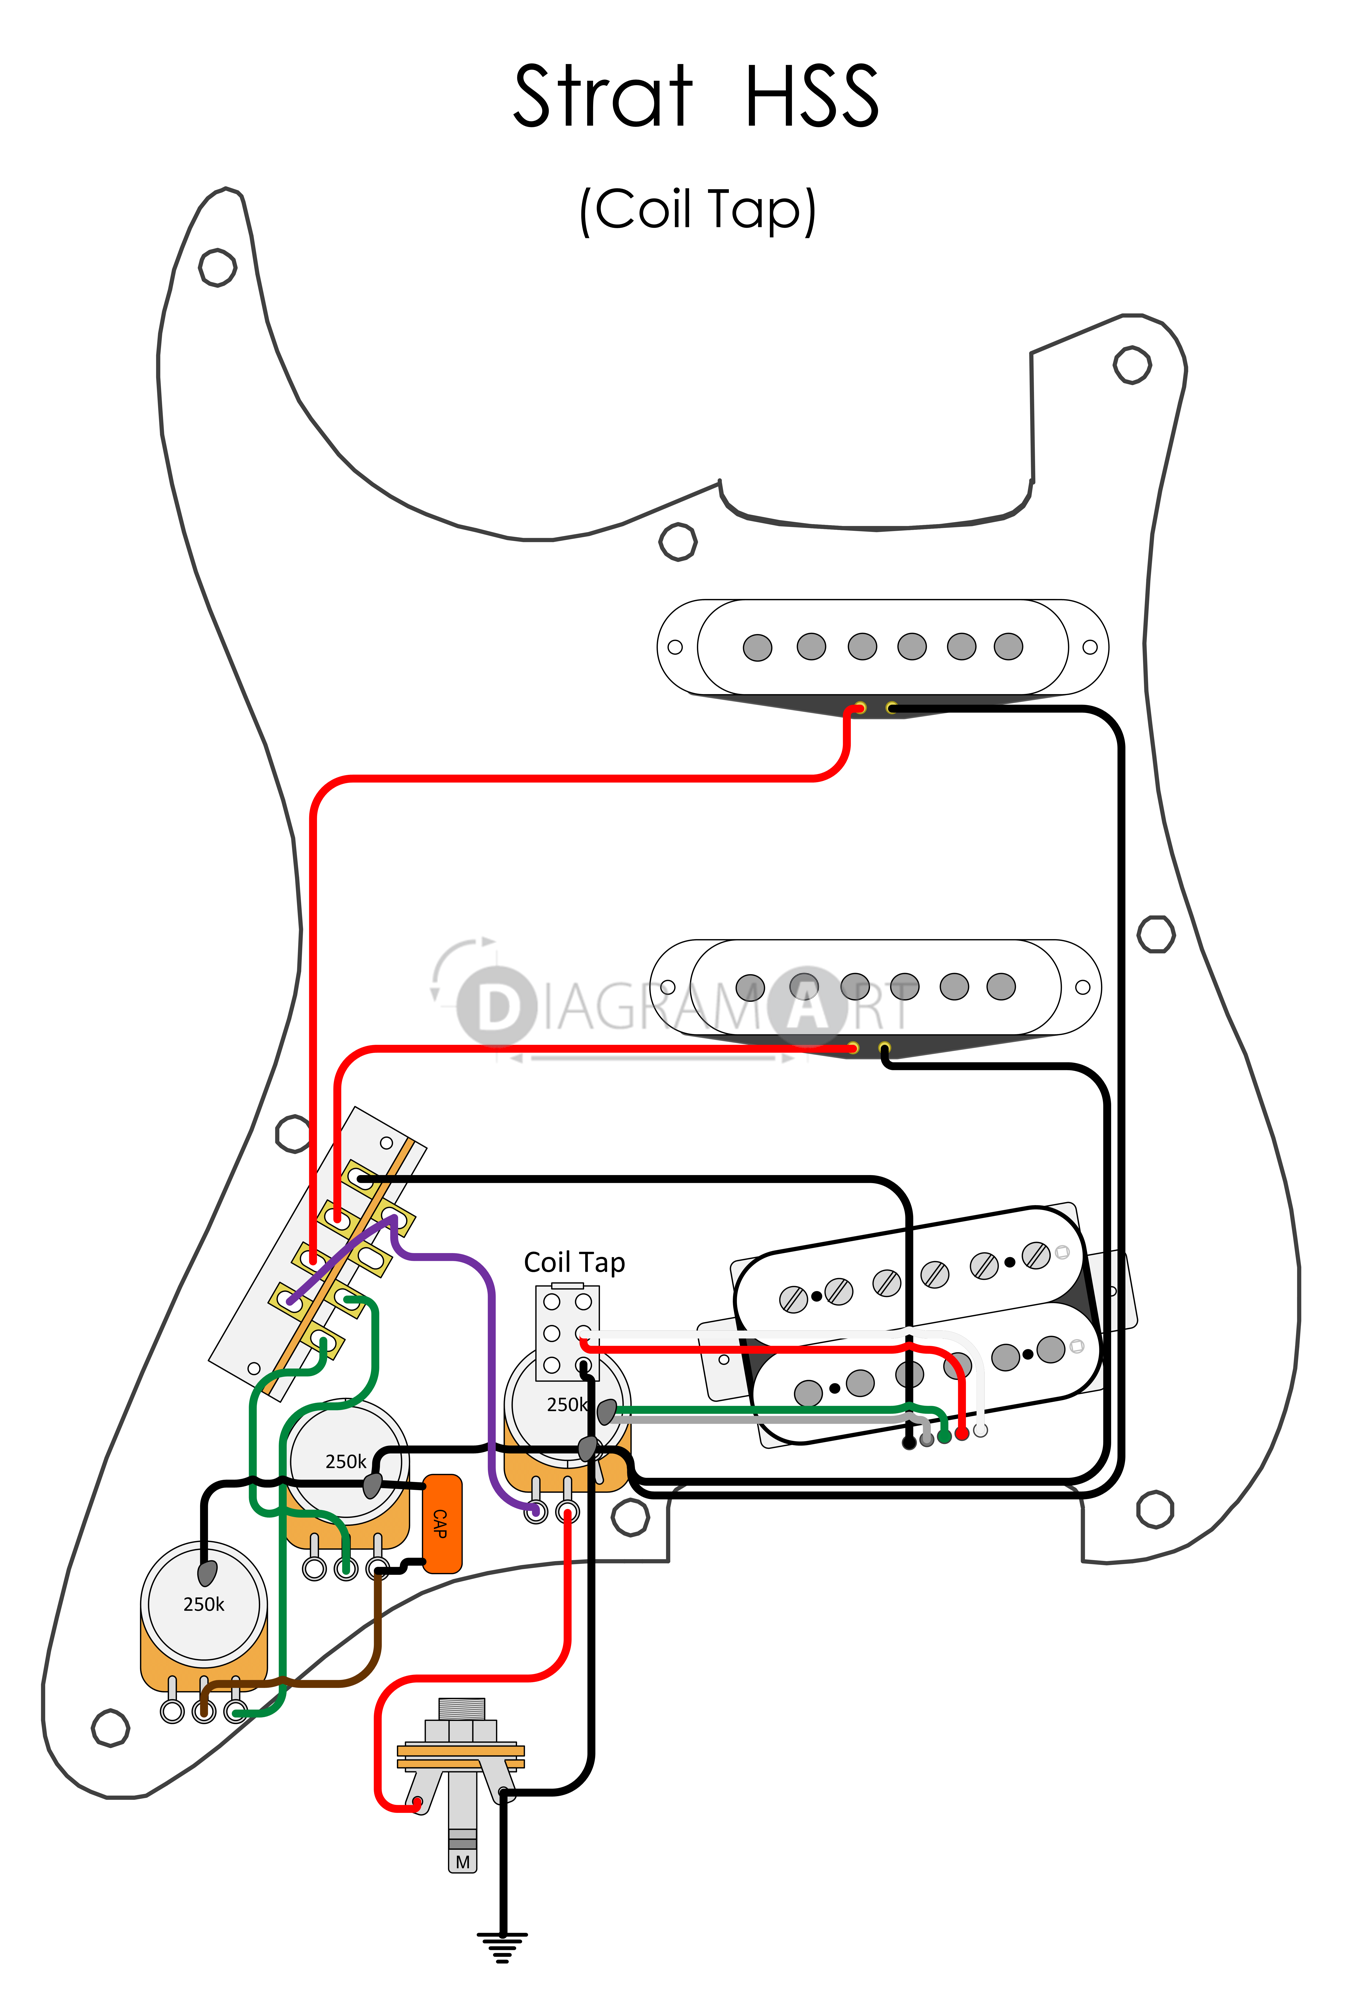 [EQHS_1162]  2EC1BDC Fender Standard Strat Hss Wiring Diagram Free Download | Wiring  Library | Free Download Lace Sensor Wiring Schematics |  | Wiring Library